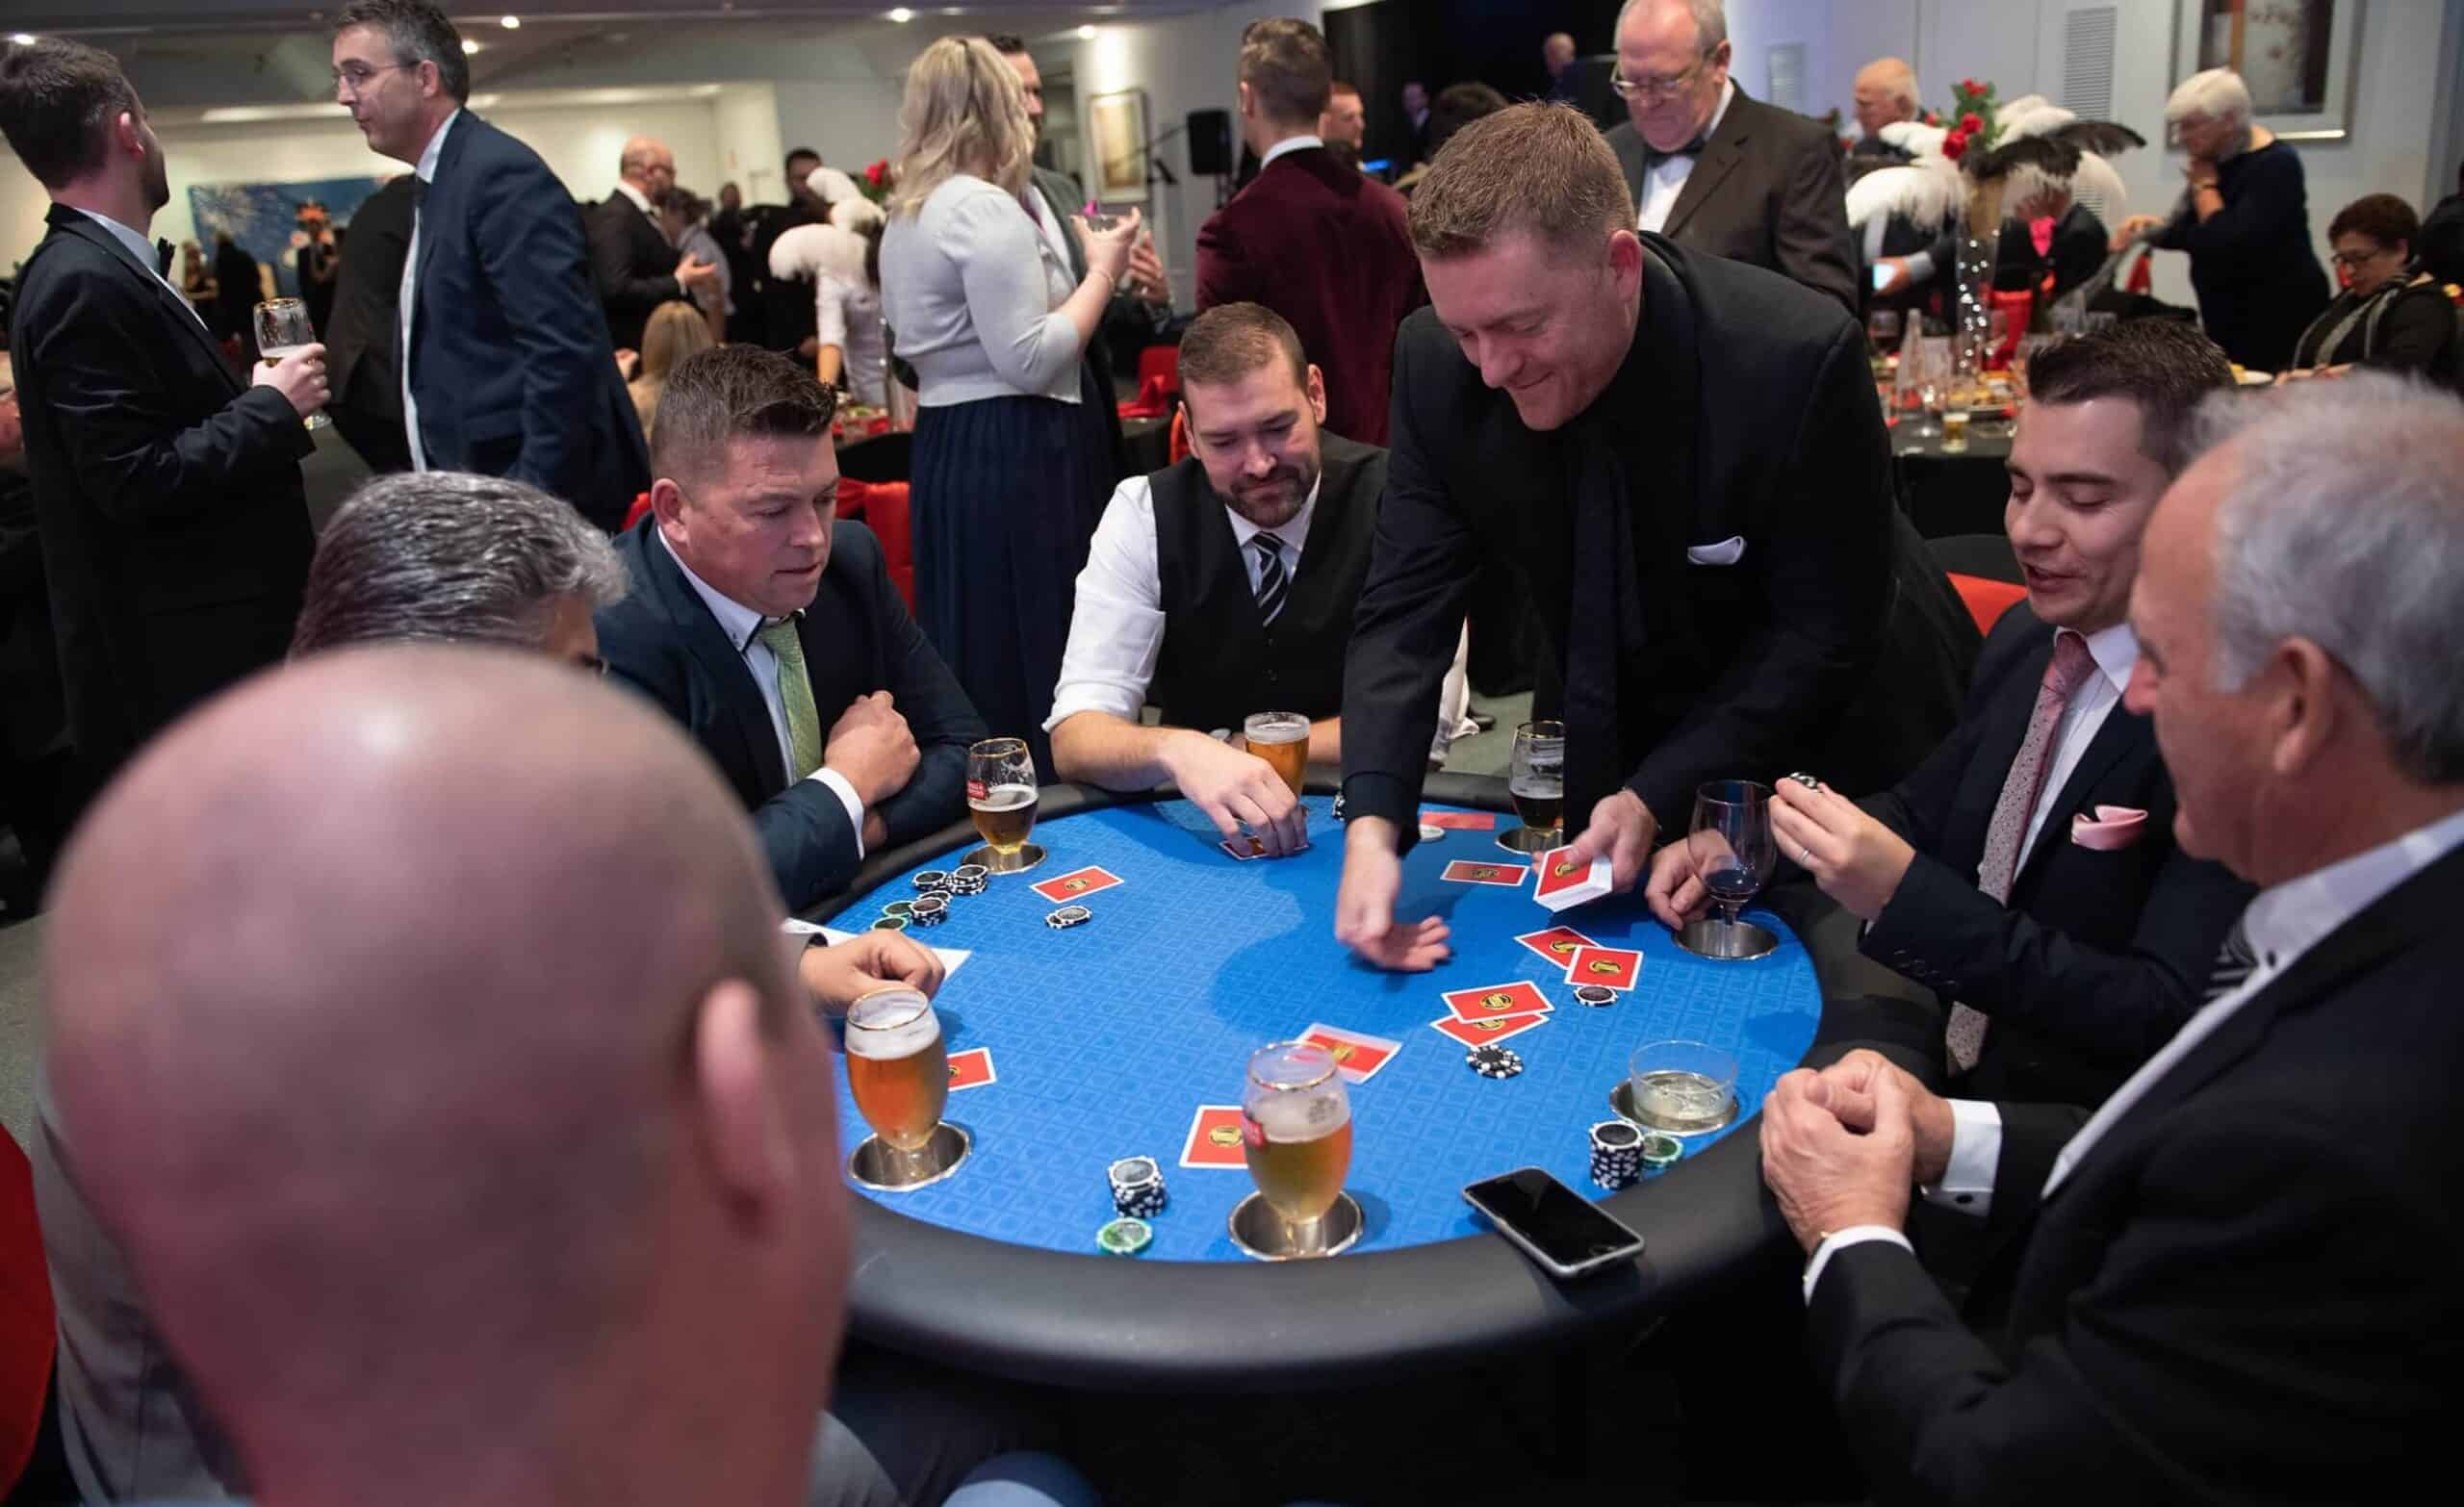 People around a poker table